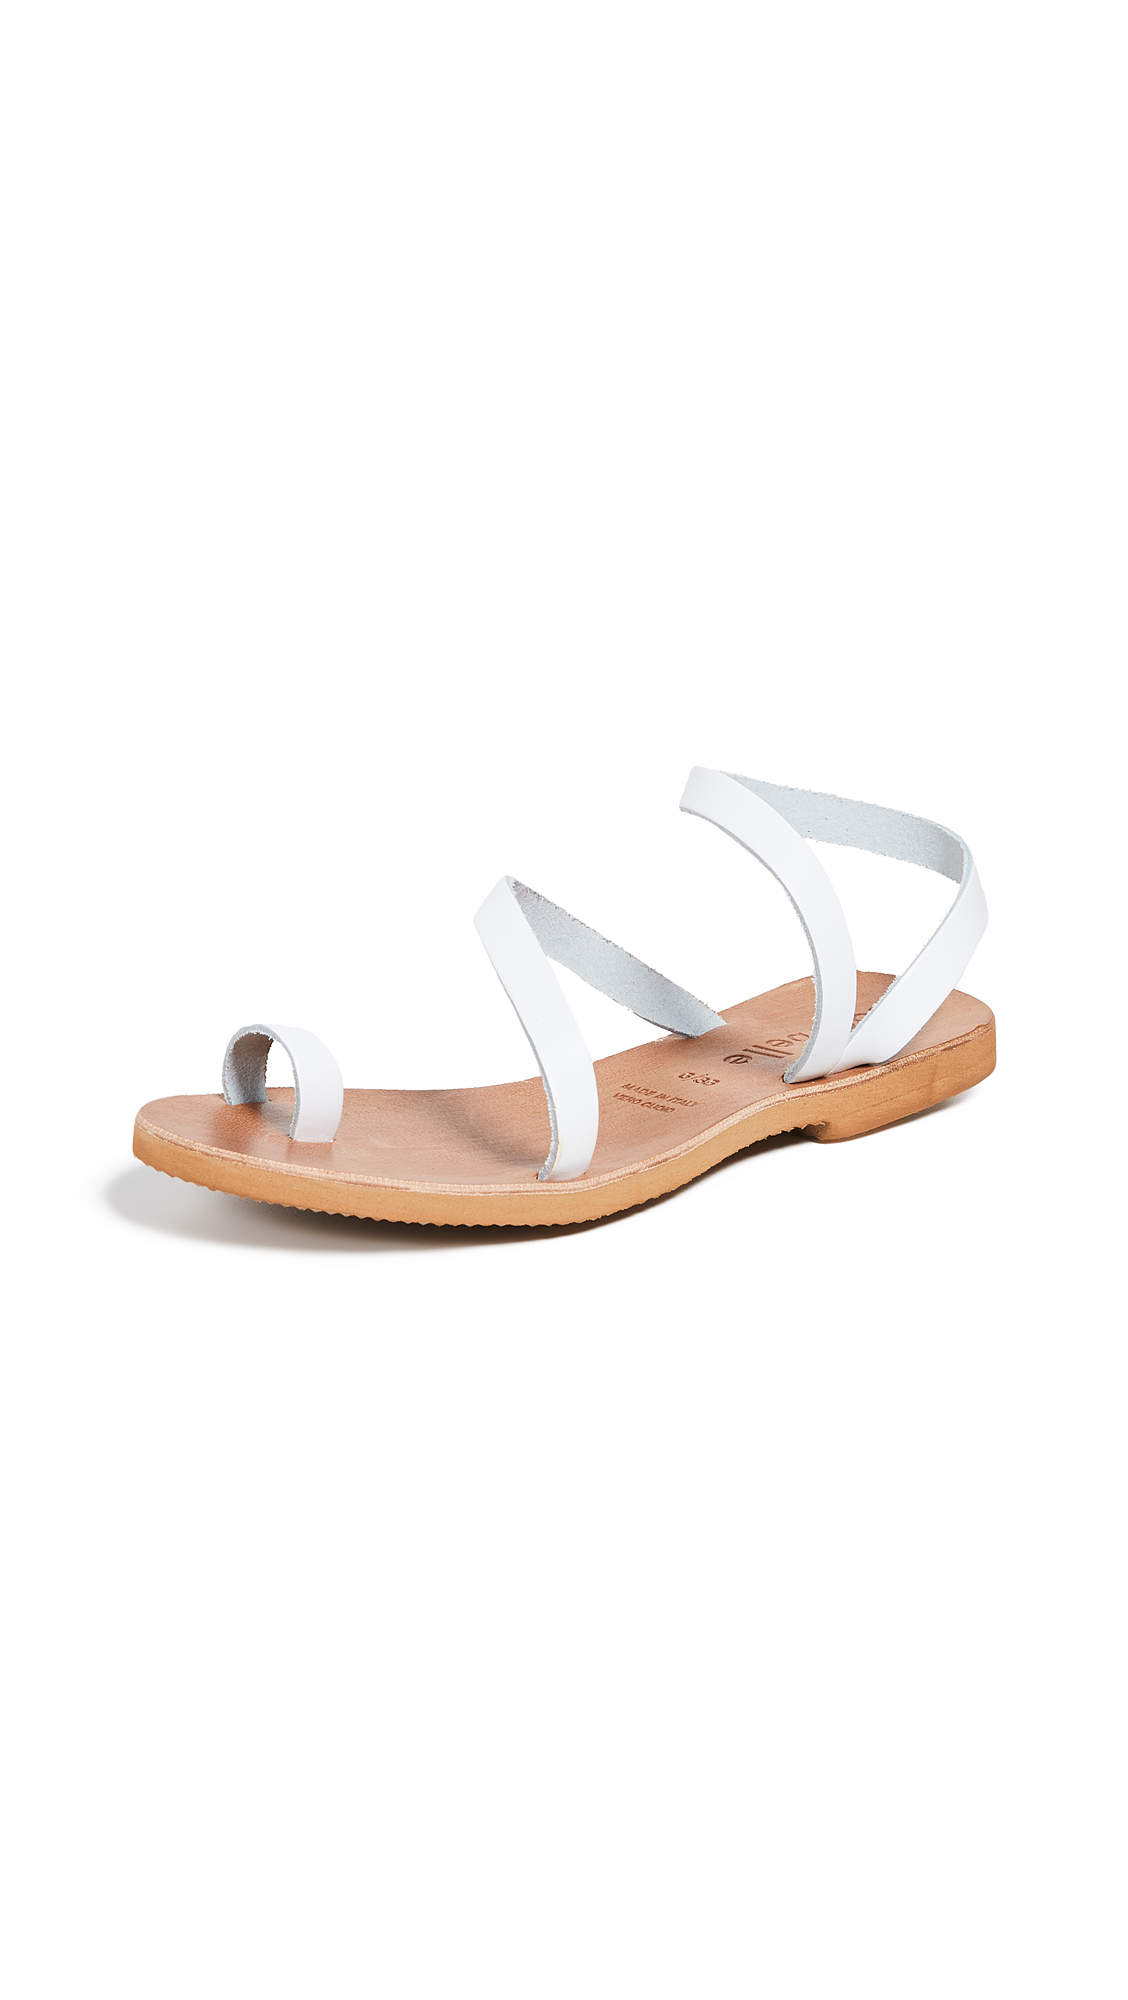 Cocobelle Crescent Strappy Sandals - White